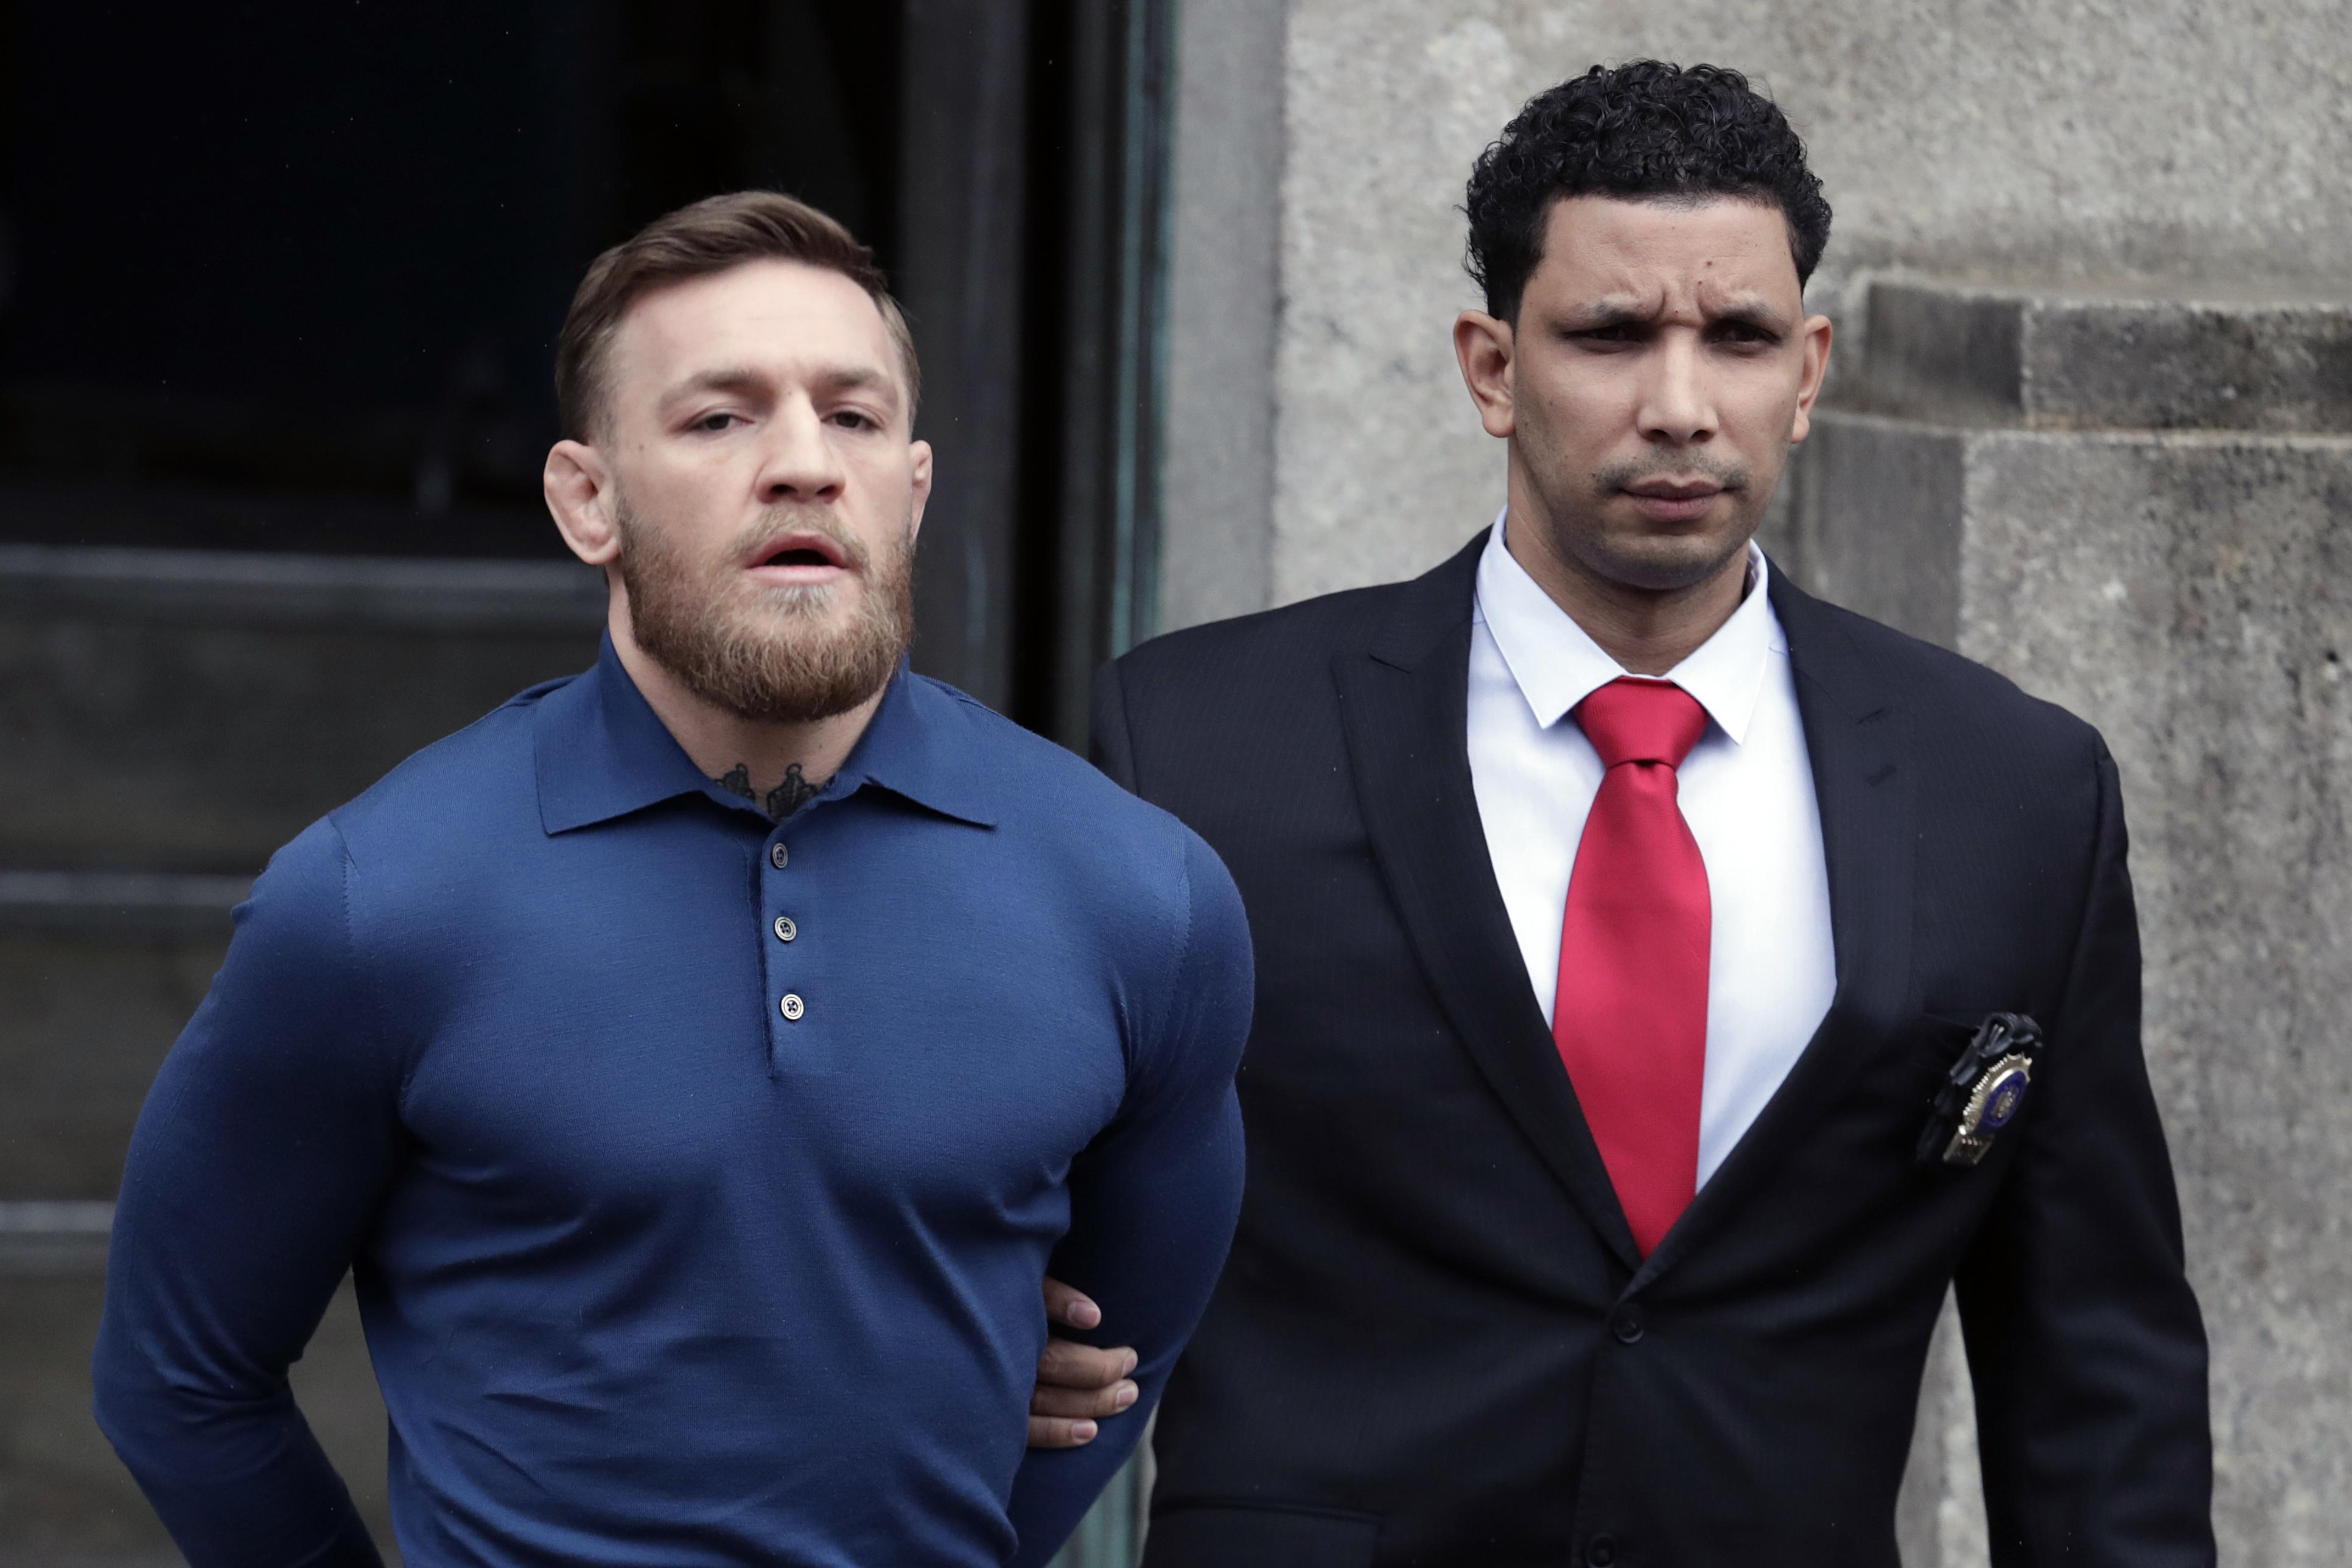 Conor McGregor will be back in the US court on June 14 where he will learn his fate